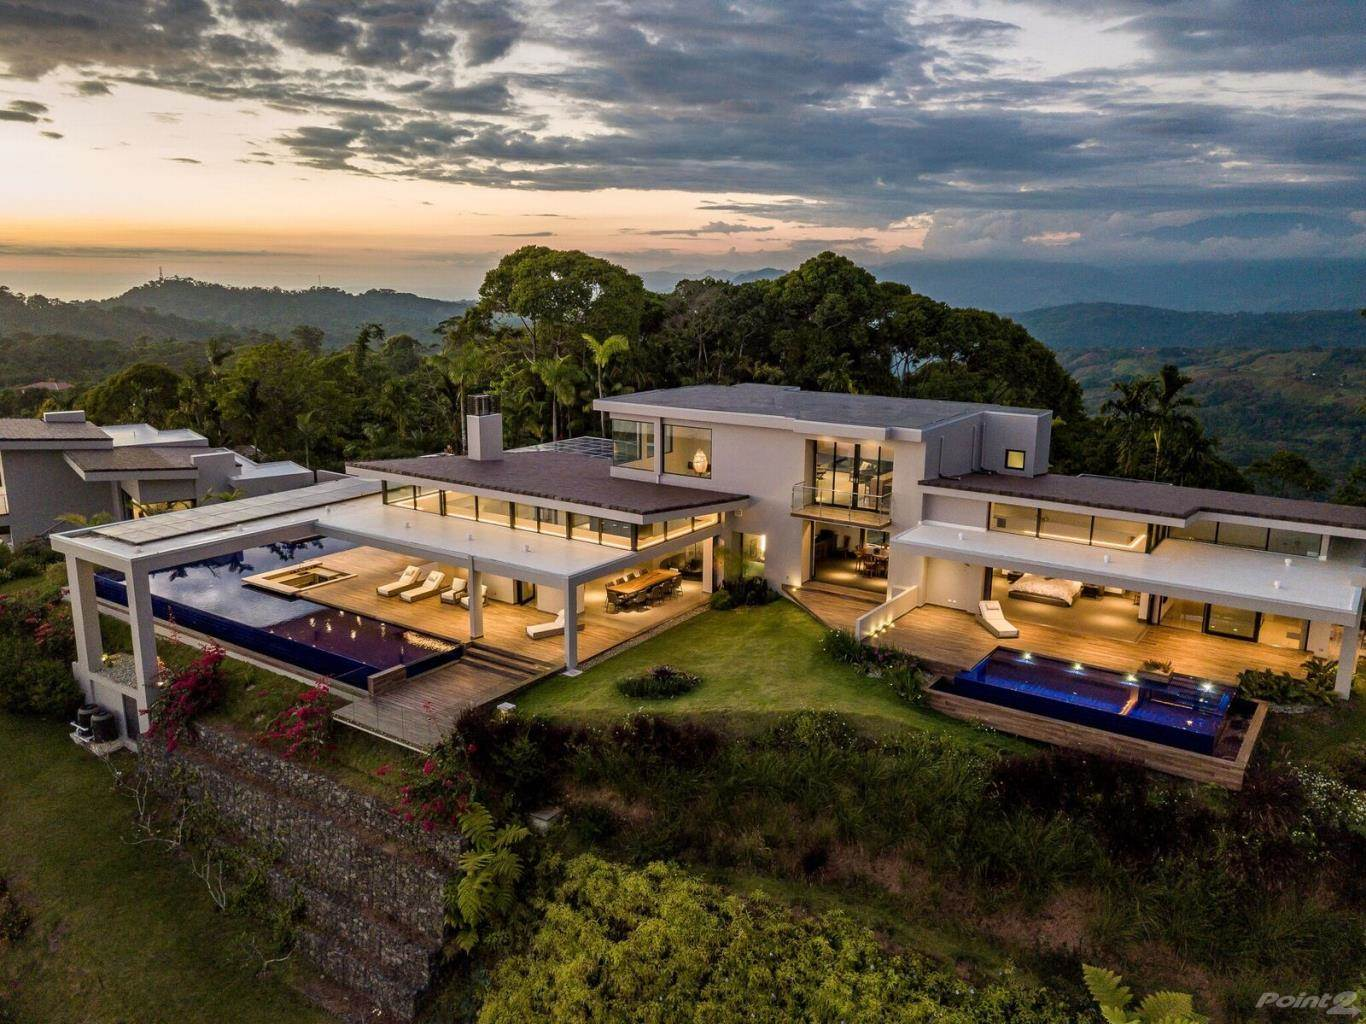 Residential For Sale in 4 ACRES - 5 Bedroom Modern Luxury Estate With 3 Pools And Epic Ocean Views!!!, Dominical, Puntarenas ,DOMINICAL  , Costa Rica